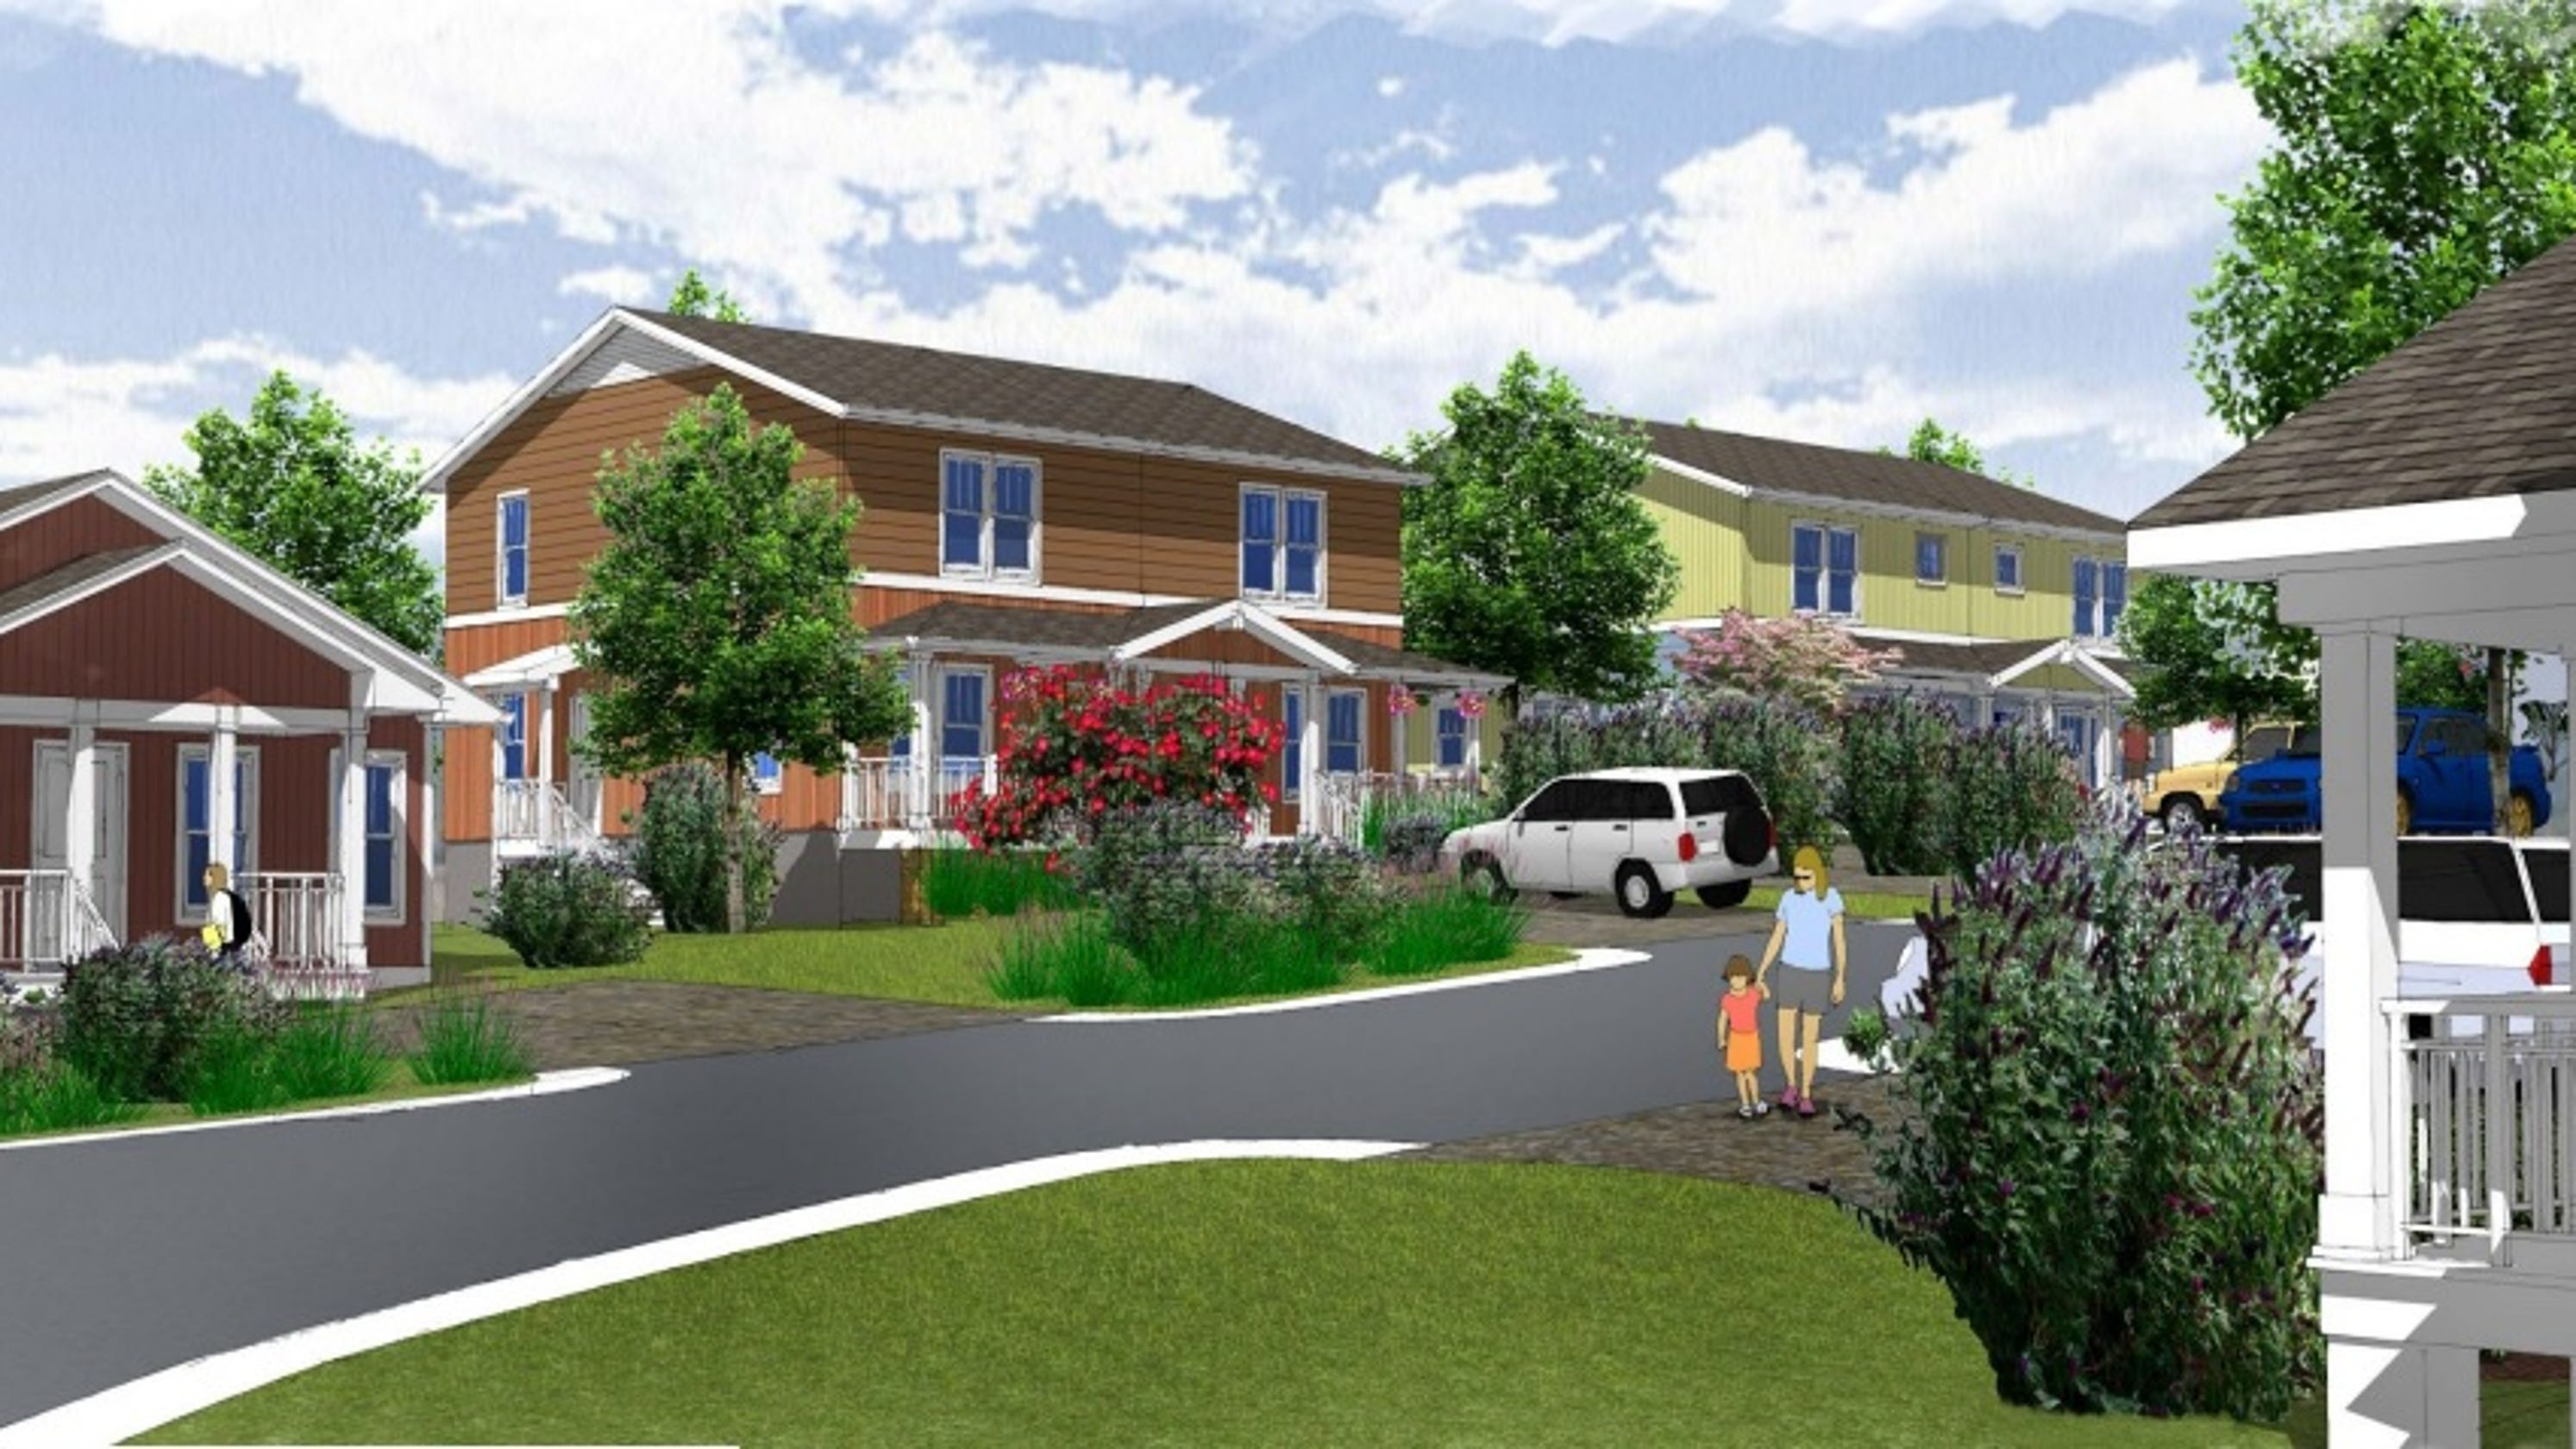 County board approves loan for 98-unit affordable home neighborhood